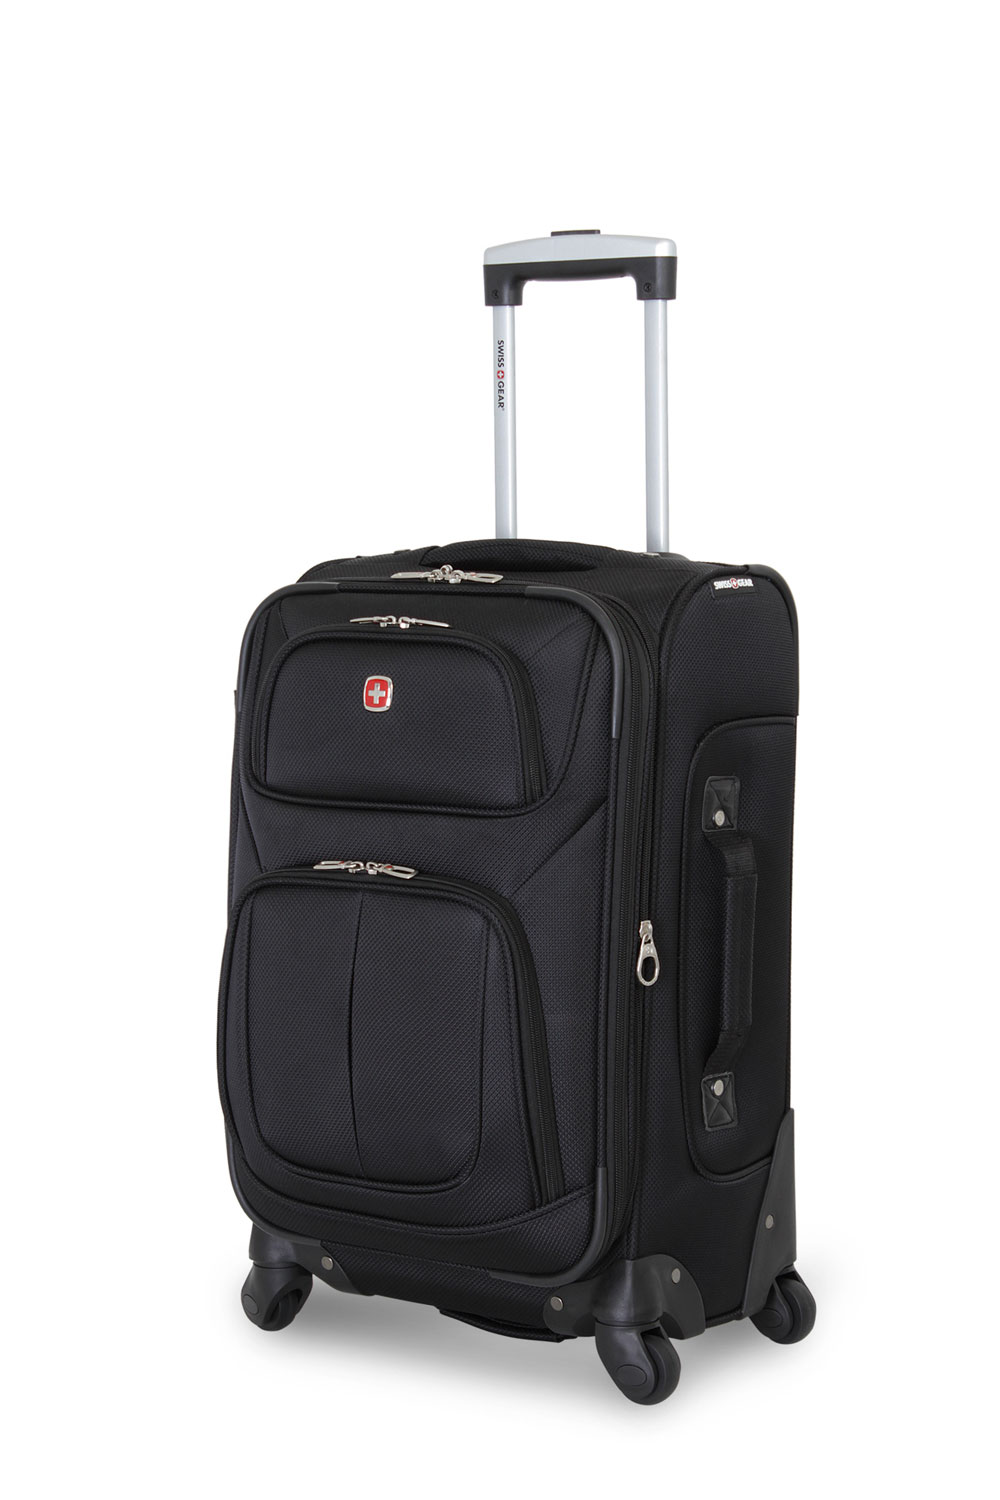 Swissgear 6283 21 Spinner Luggage